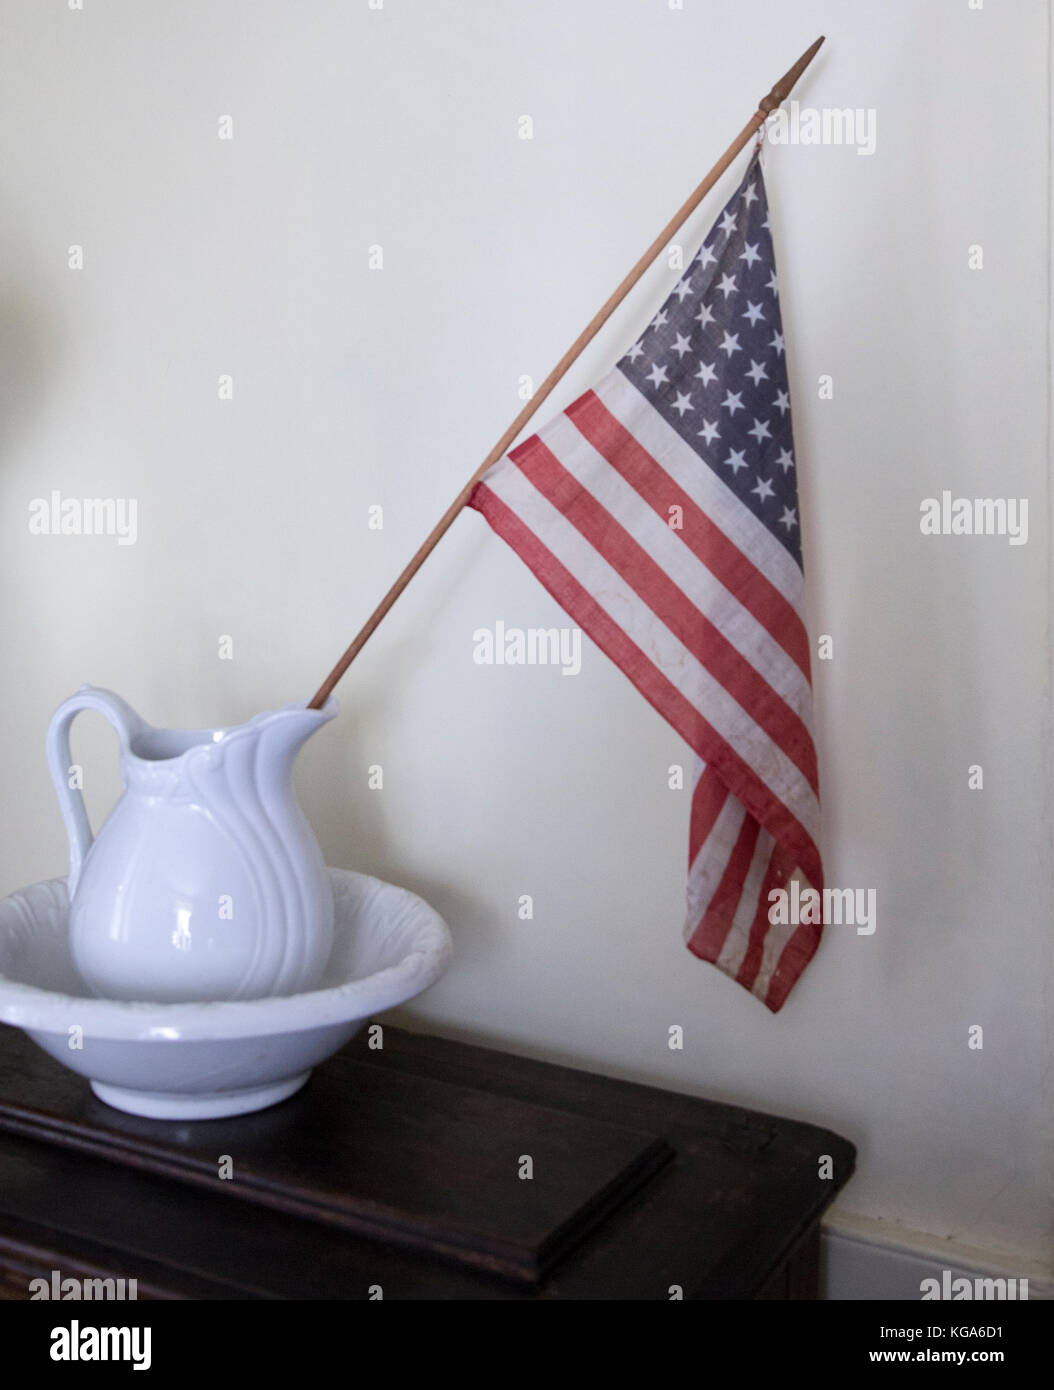 An American flag and a pitcher and bowl at at the Hopper-Goetschius house museum in Upper Saddle River, New Jersey - Stock Image